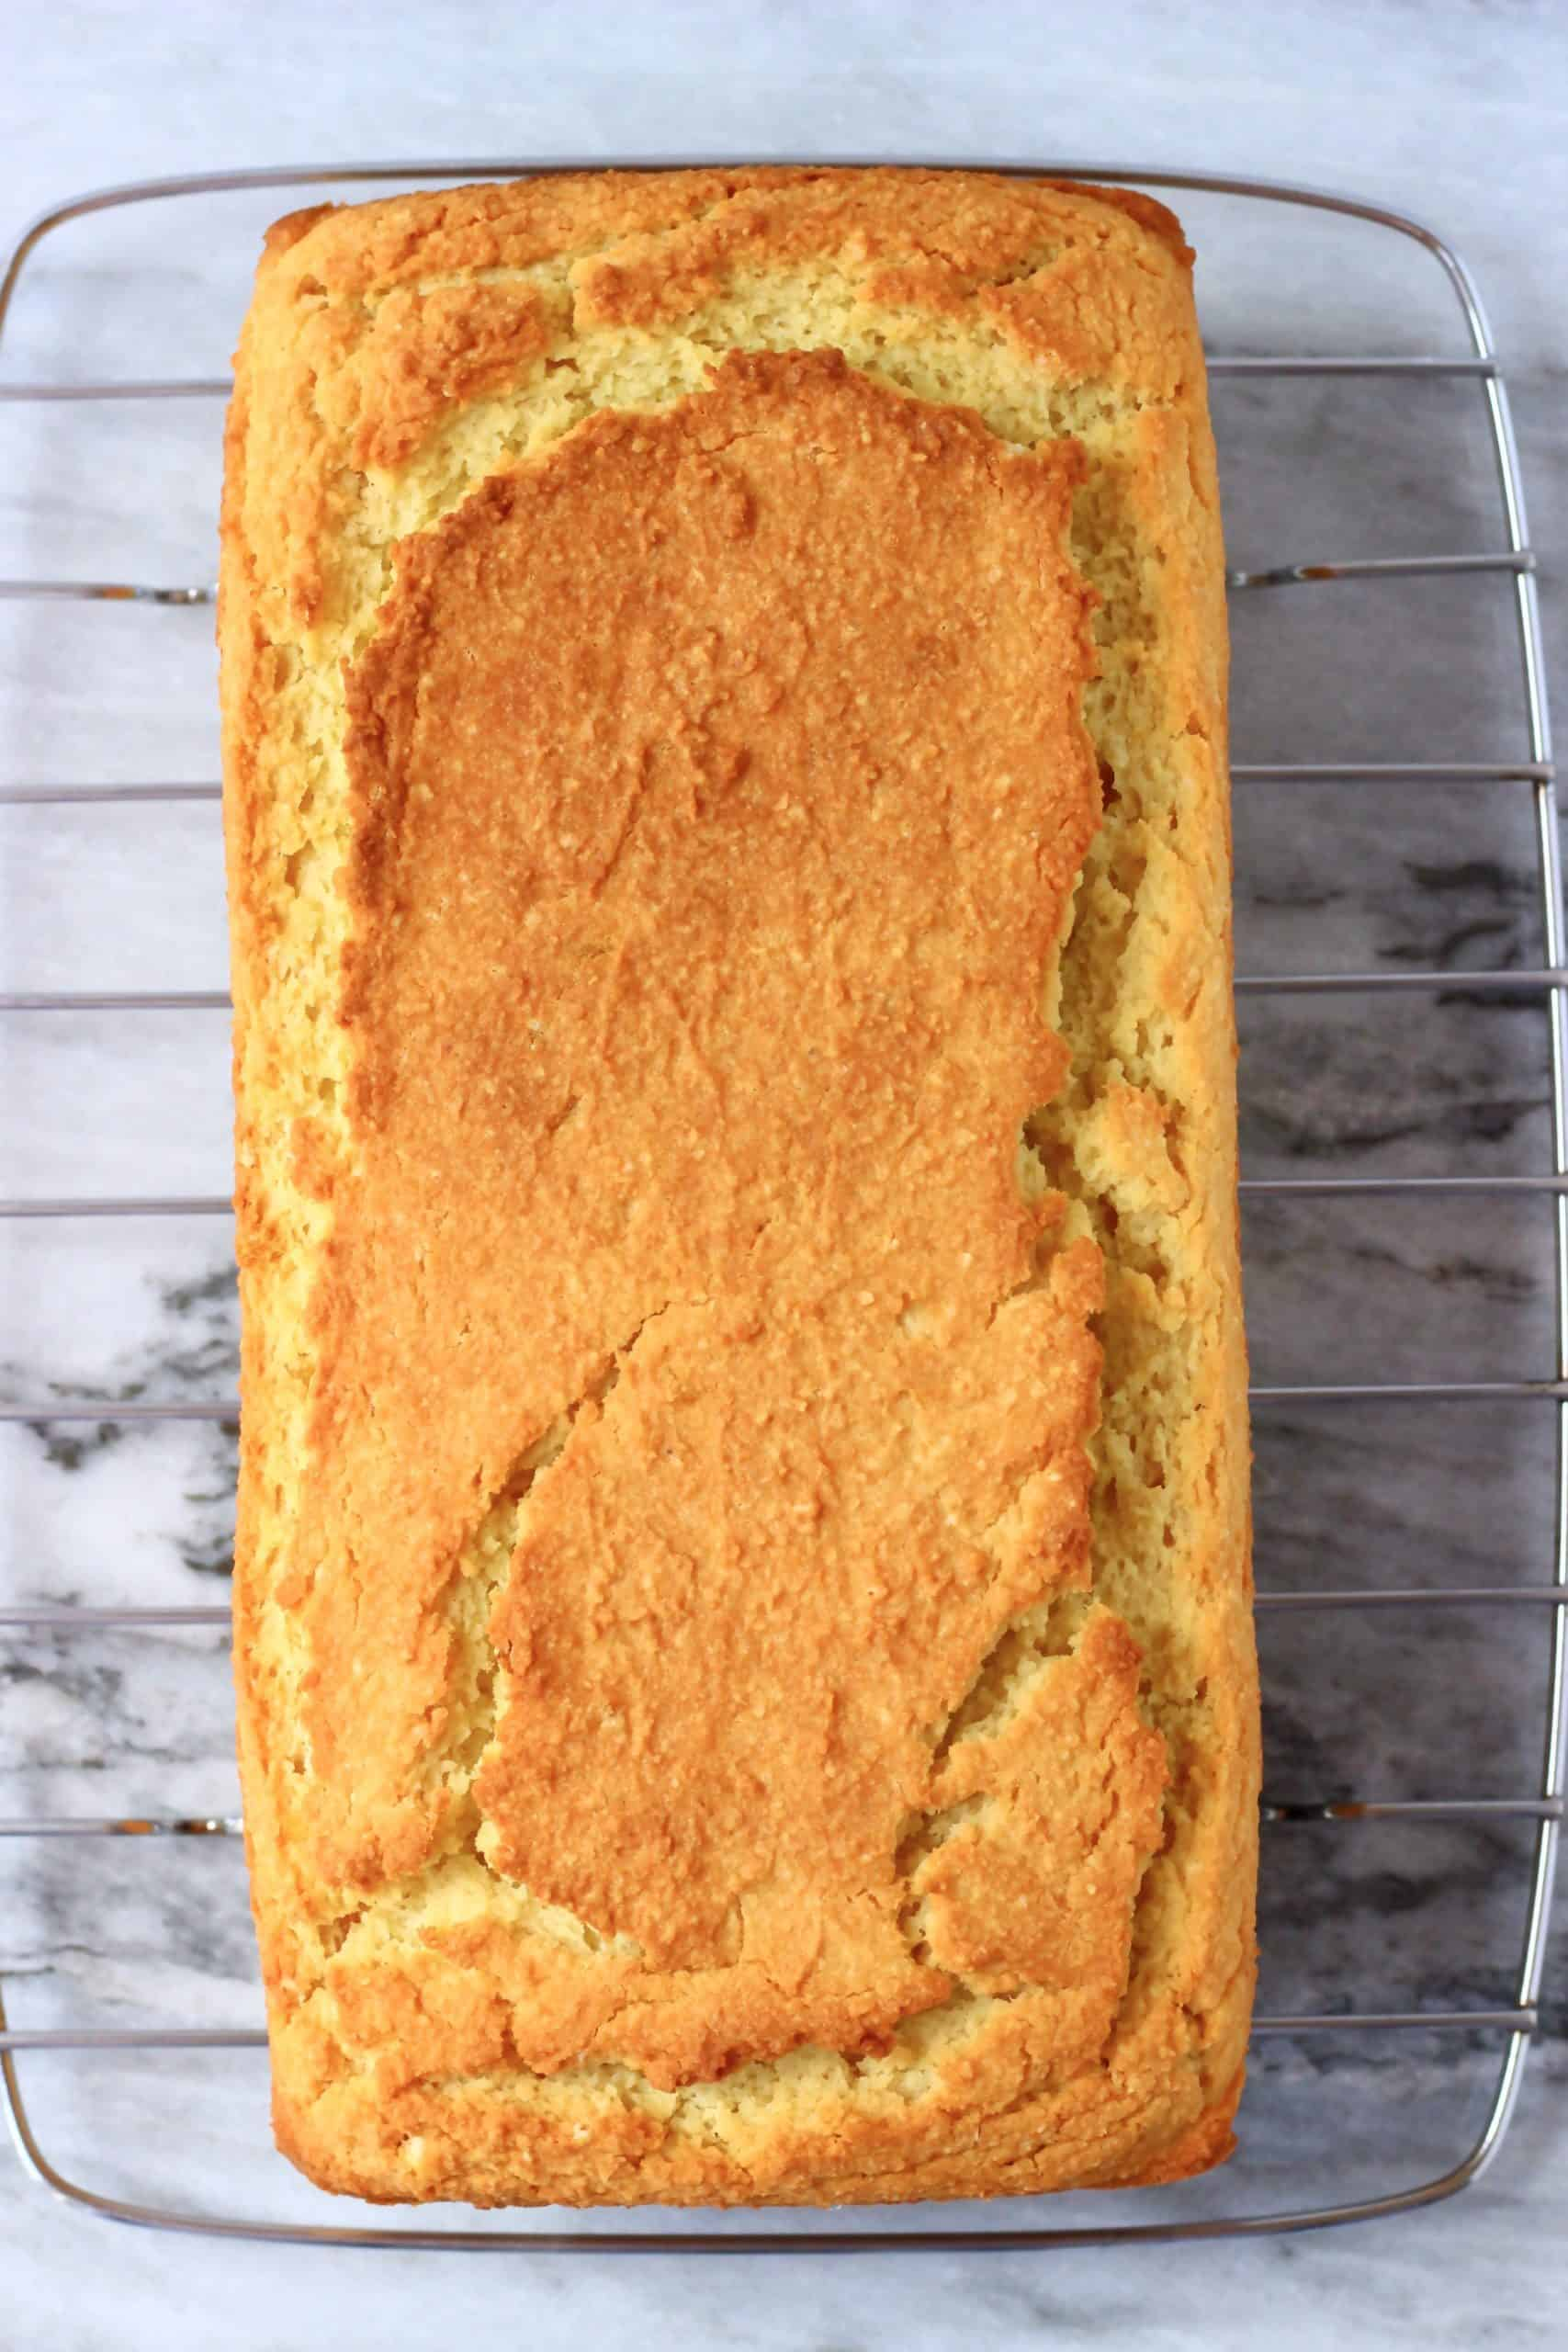 A loaf of gluten-free vegan orange pound cake on a wire rack